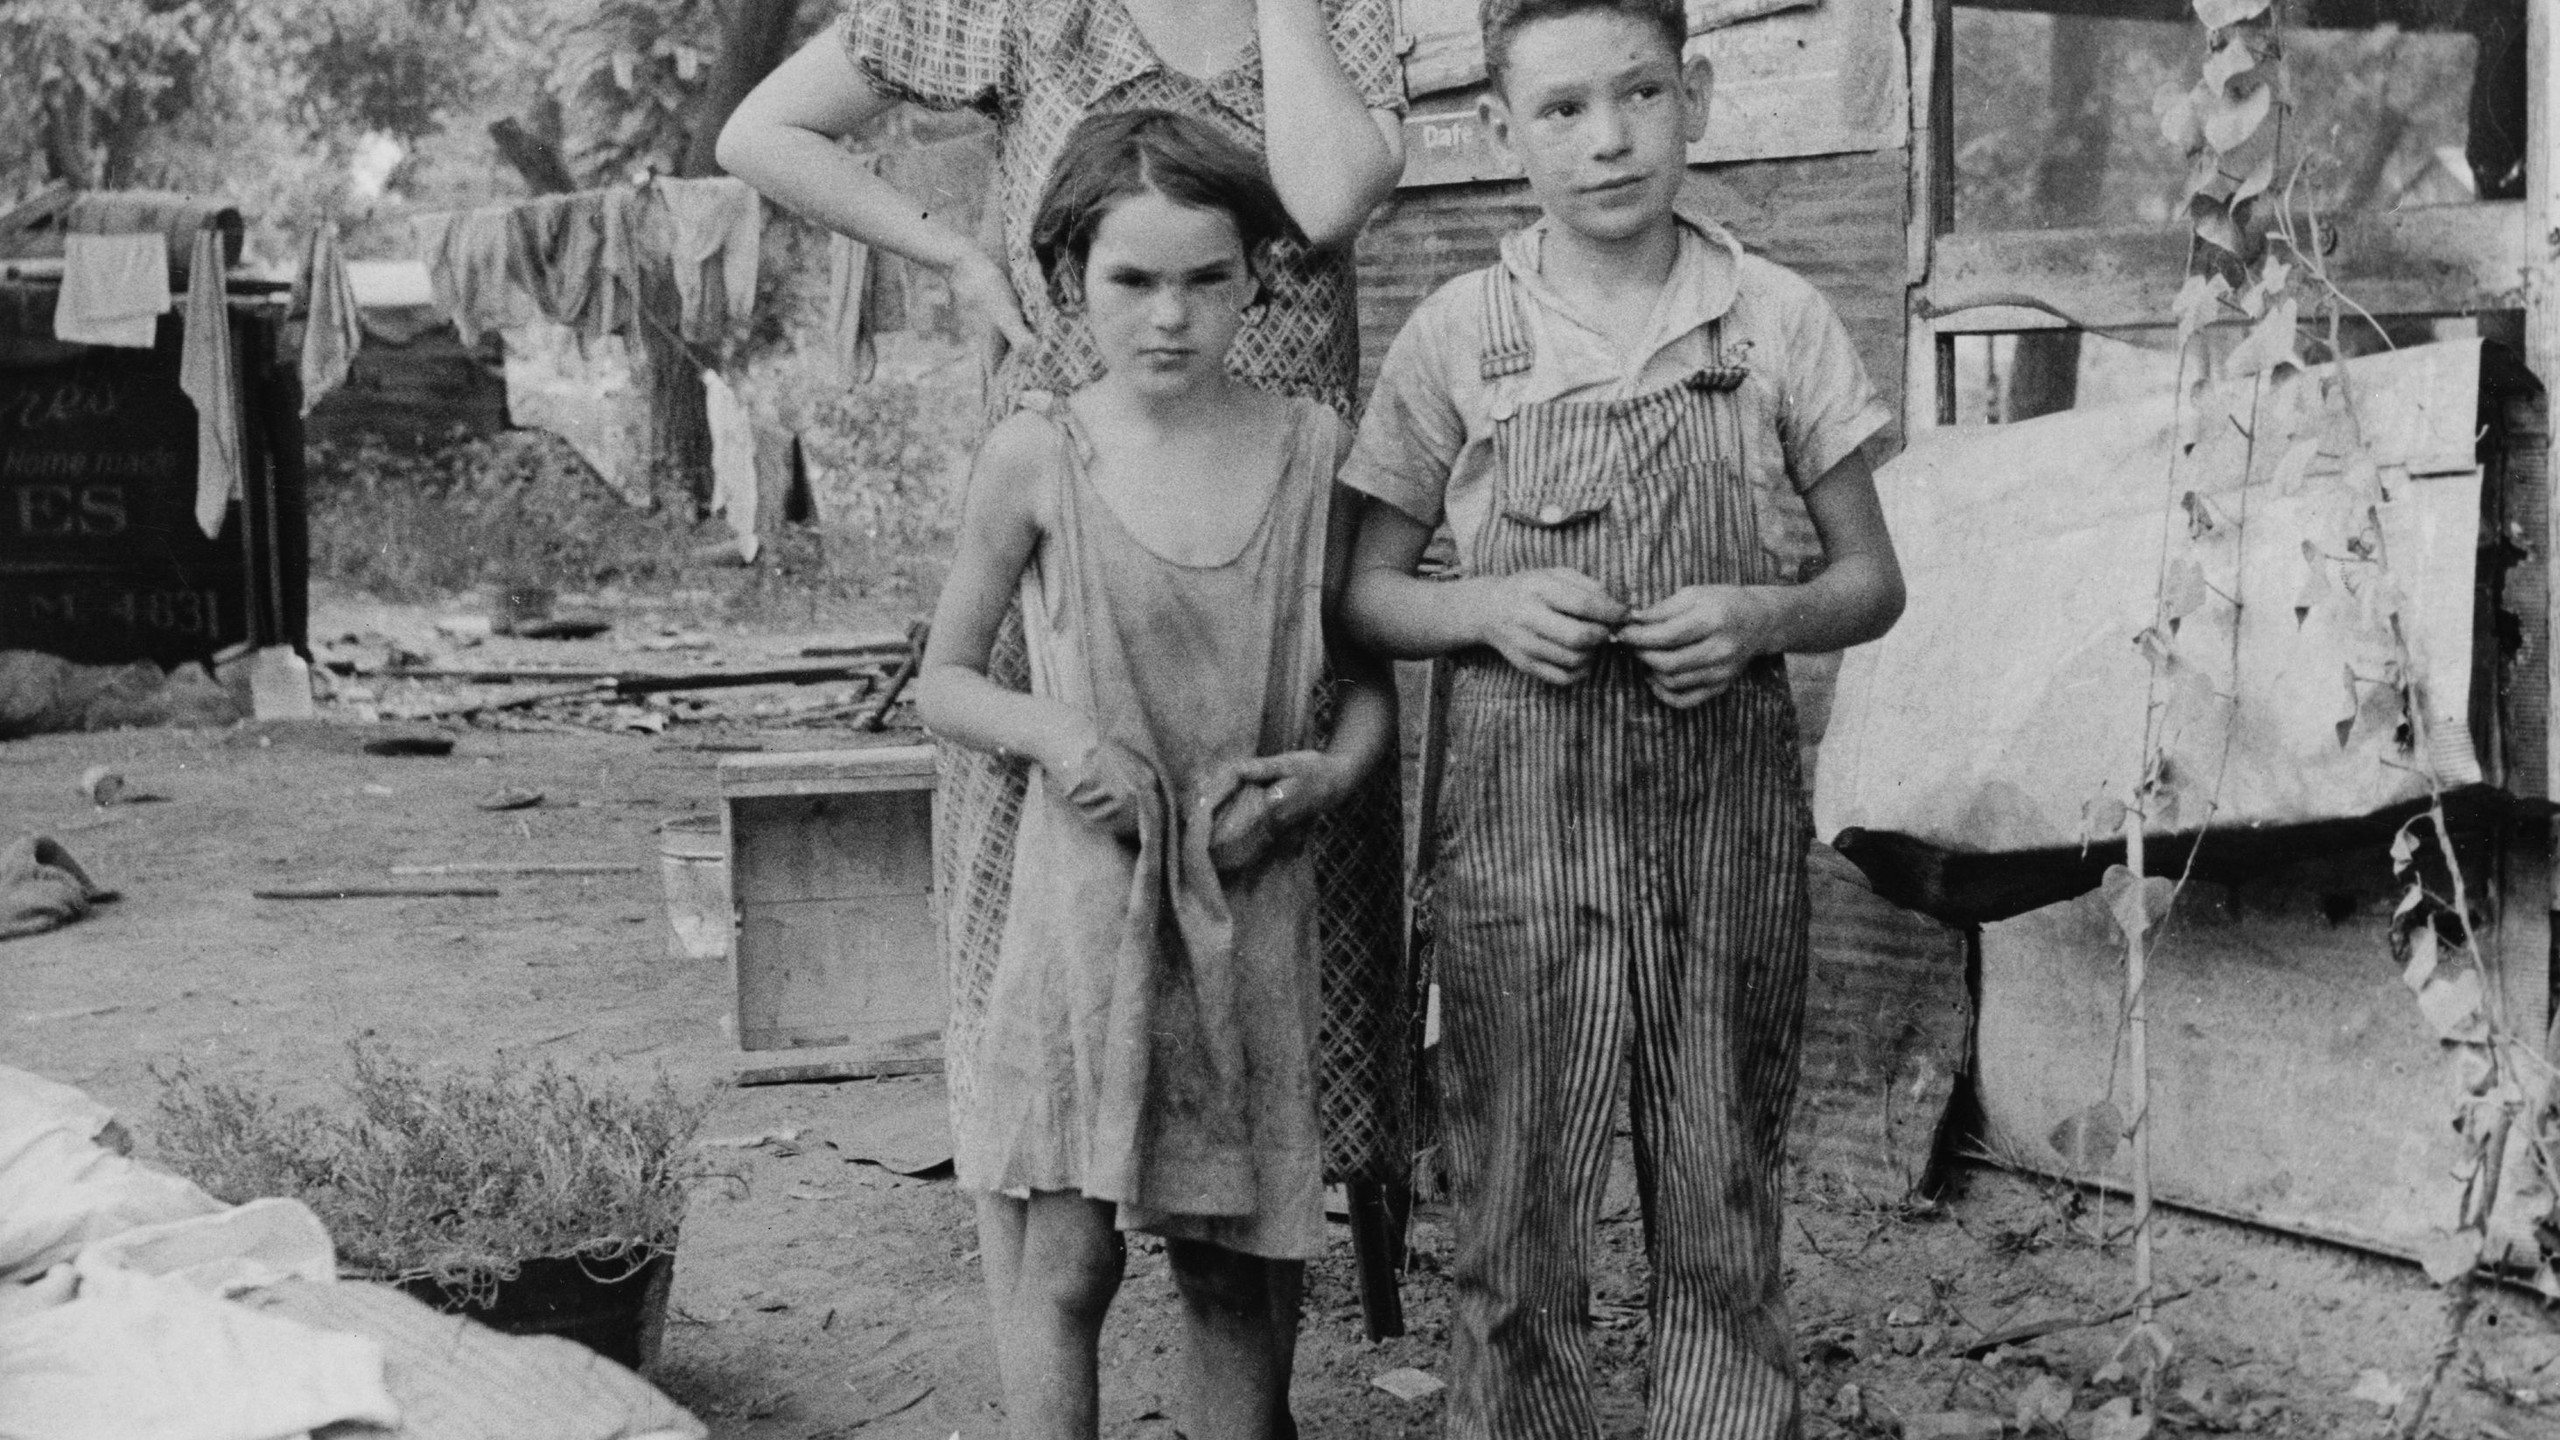 An impoverished American family living in a shanty, 1936